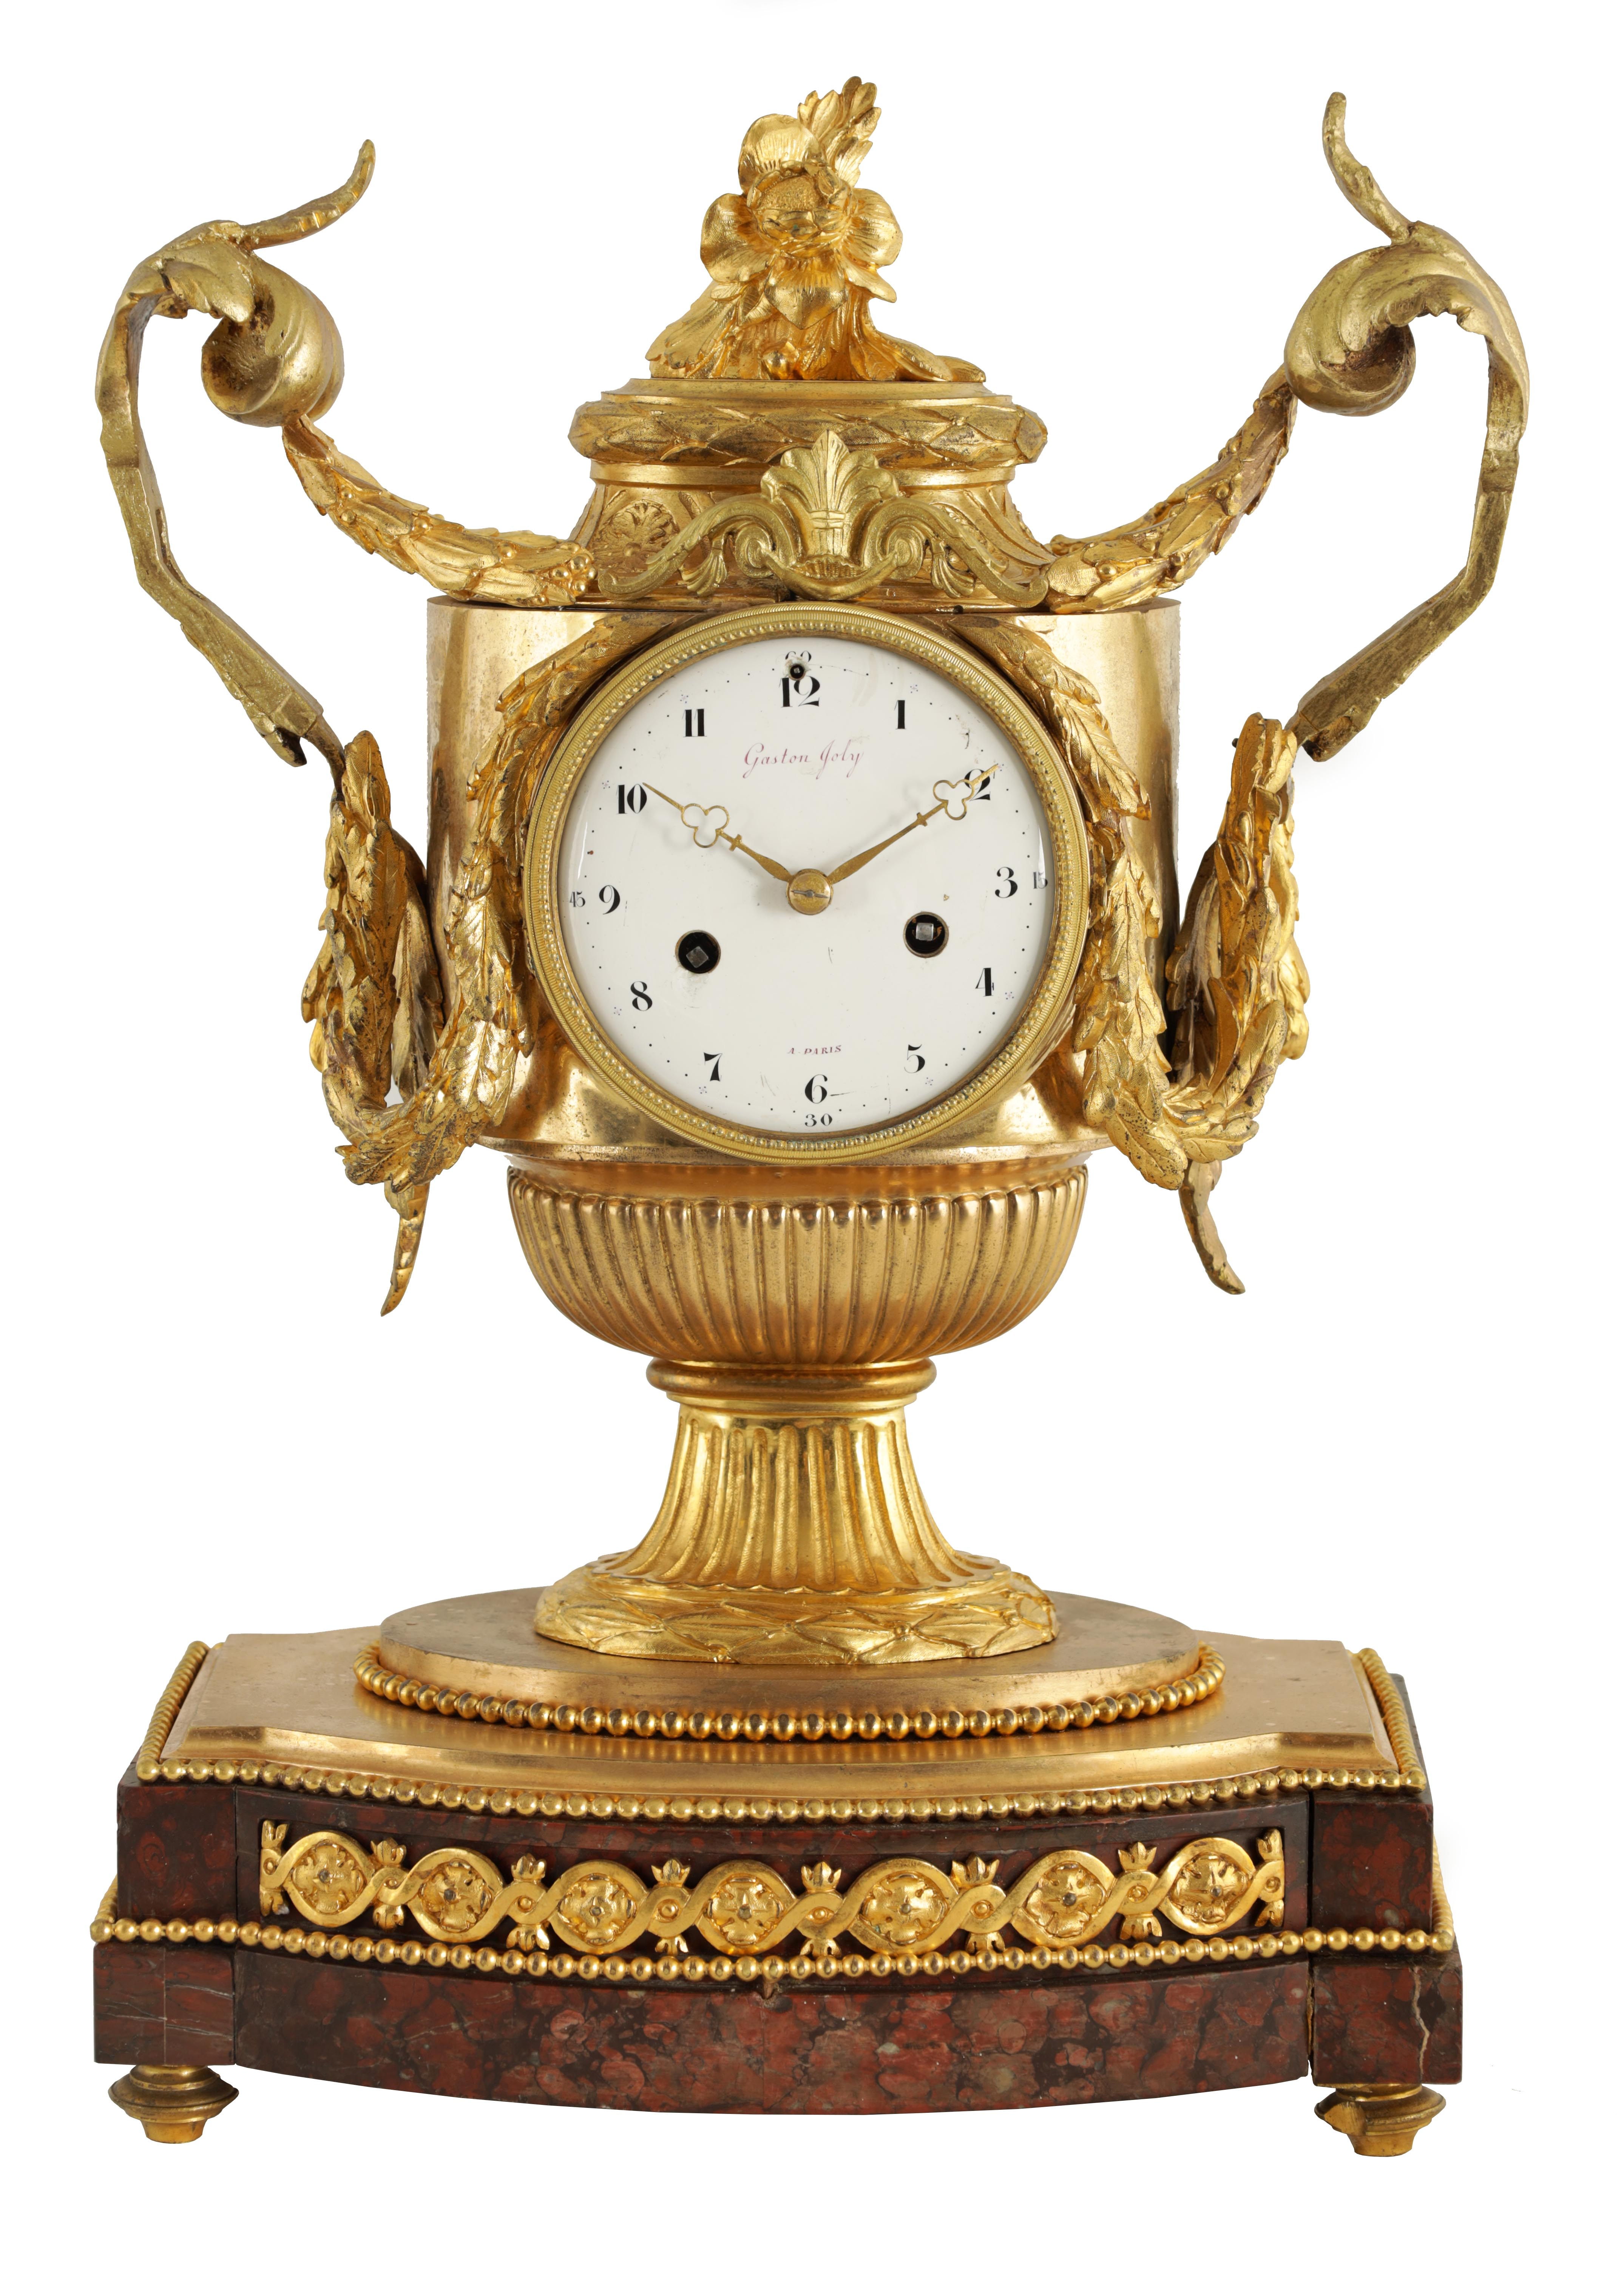 GASTON JOLY, A PARIS AN IMPRESSIVE EARLY 19TH CENTURY FRENCH ORMOLU AND ROUGE MARBLE URN SHAPED